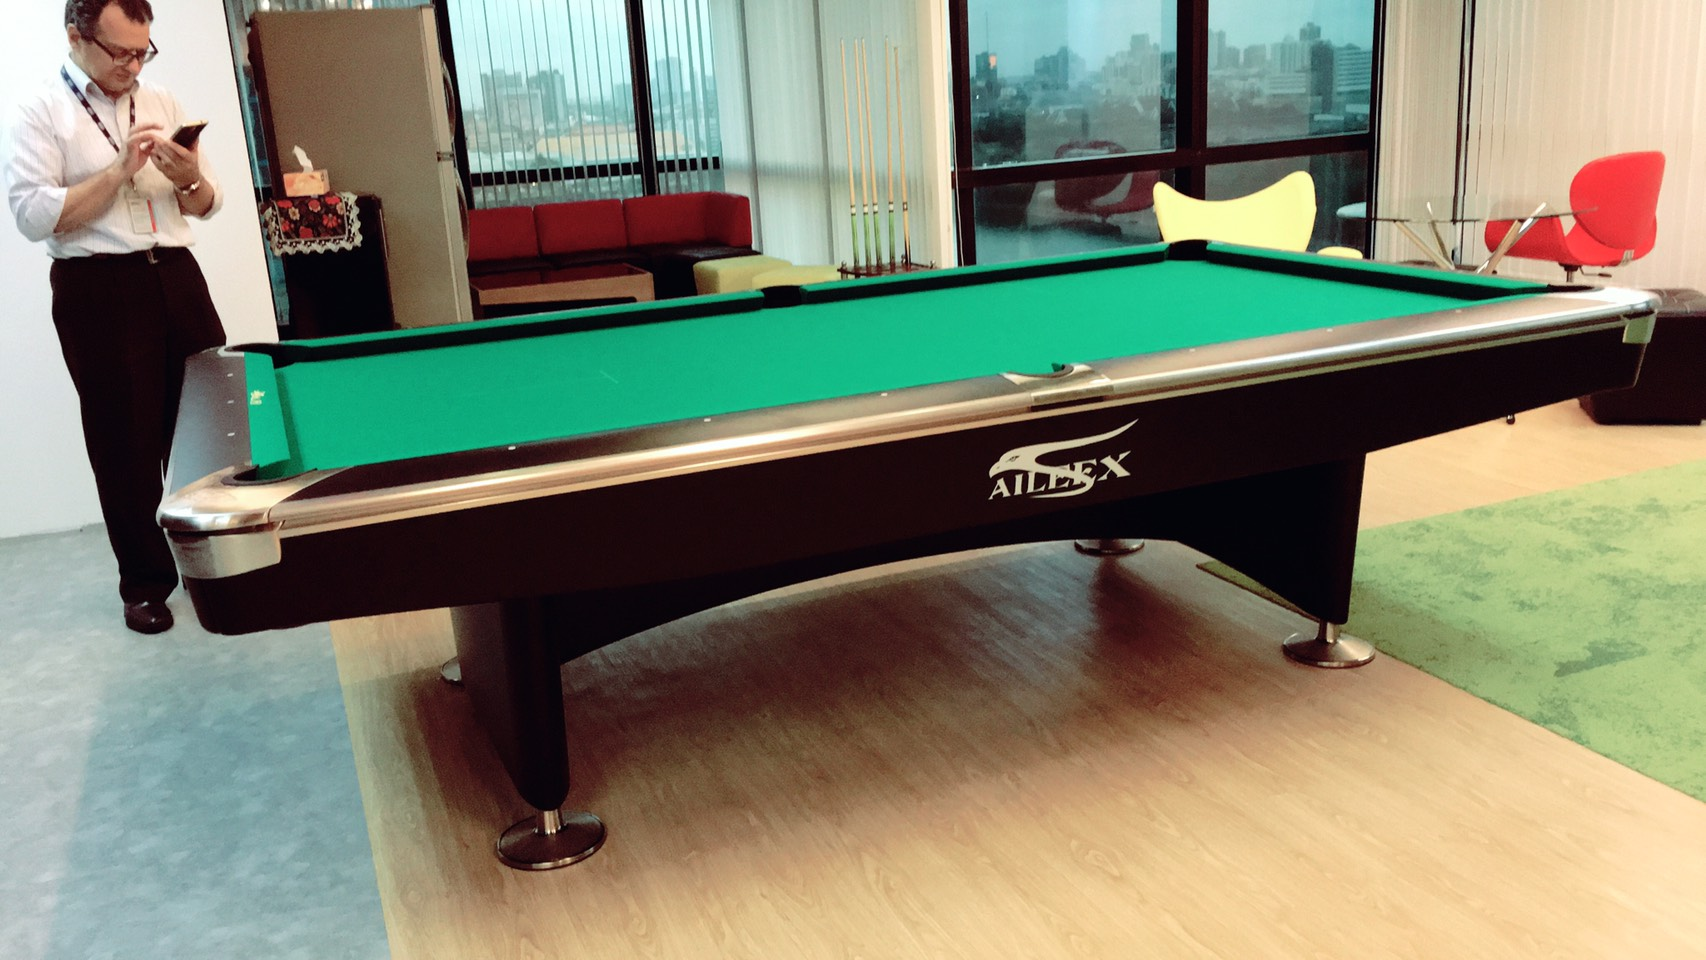 Our Customer BDO Advisory Limited Brand New Aileex Crown 6 (9ft) Pool Table  Order. Thank You For Choosing Thailand Billiard. Best Value In Pool Table.